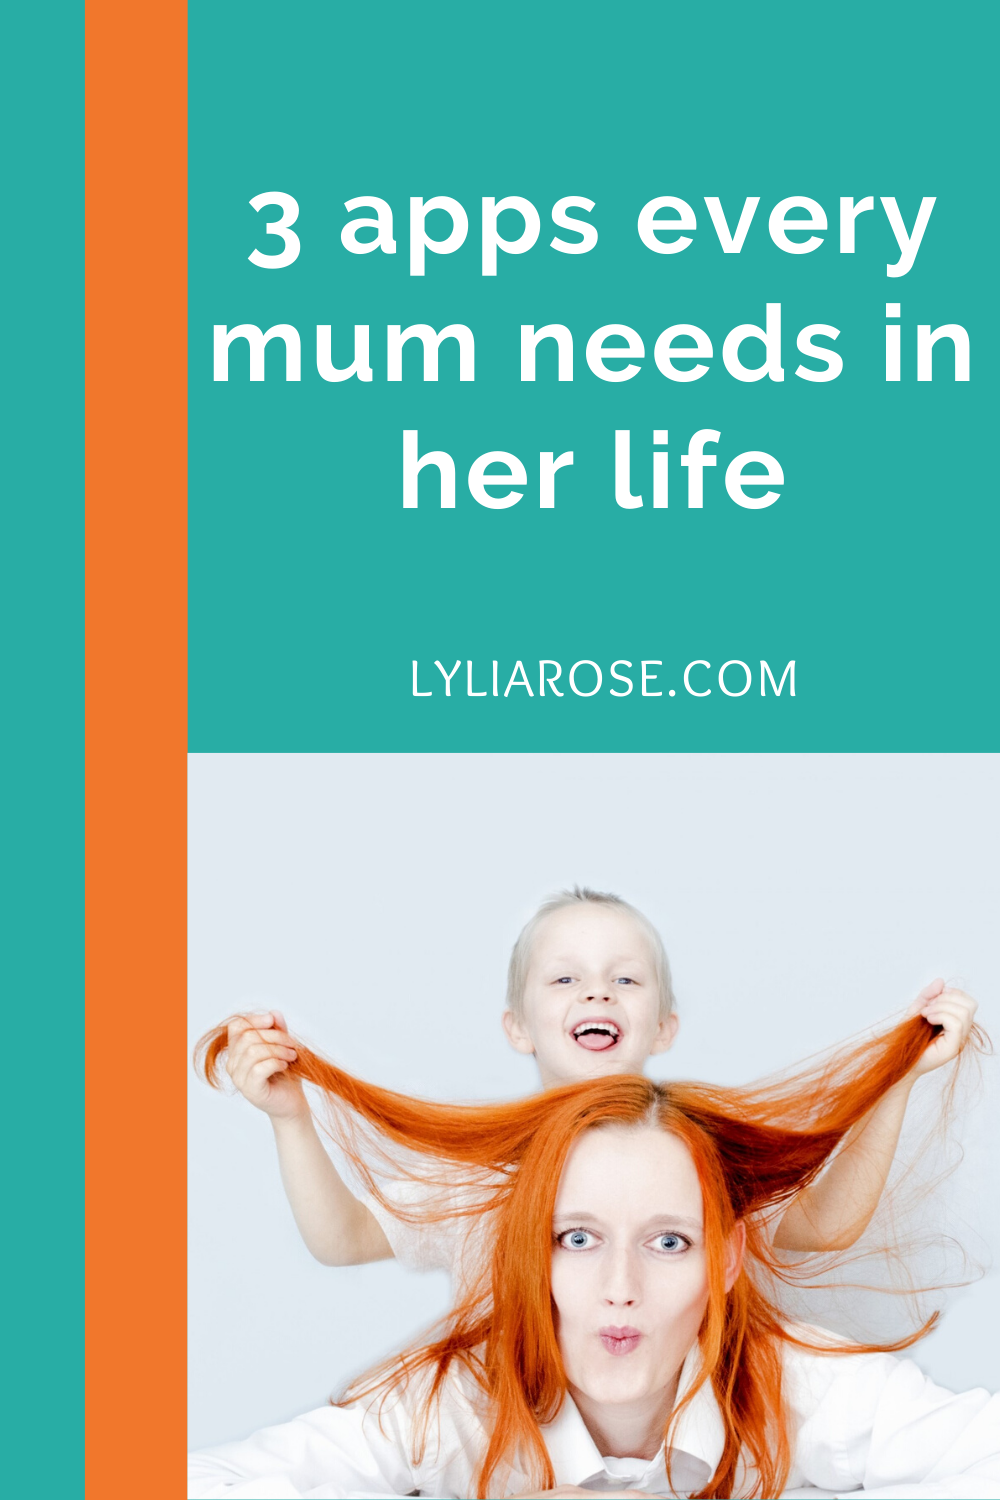 3 apps every mum needs in her life